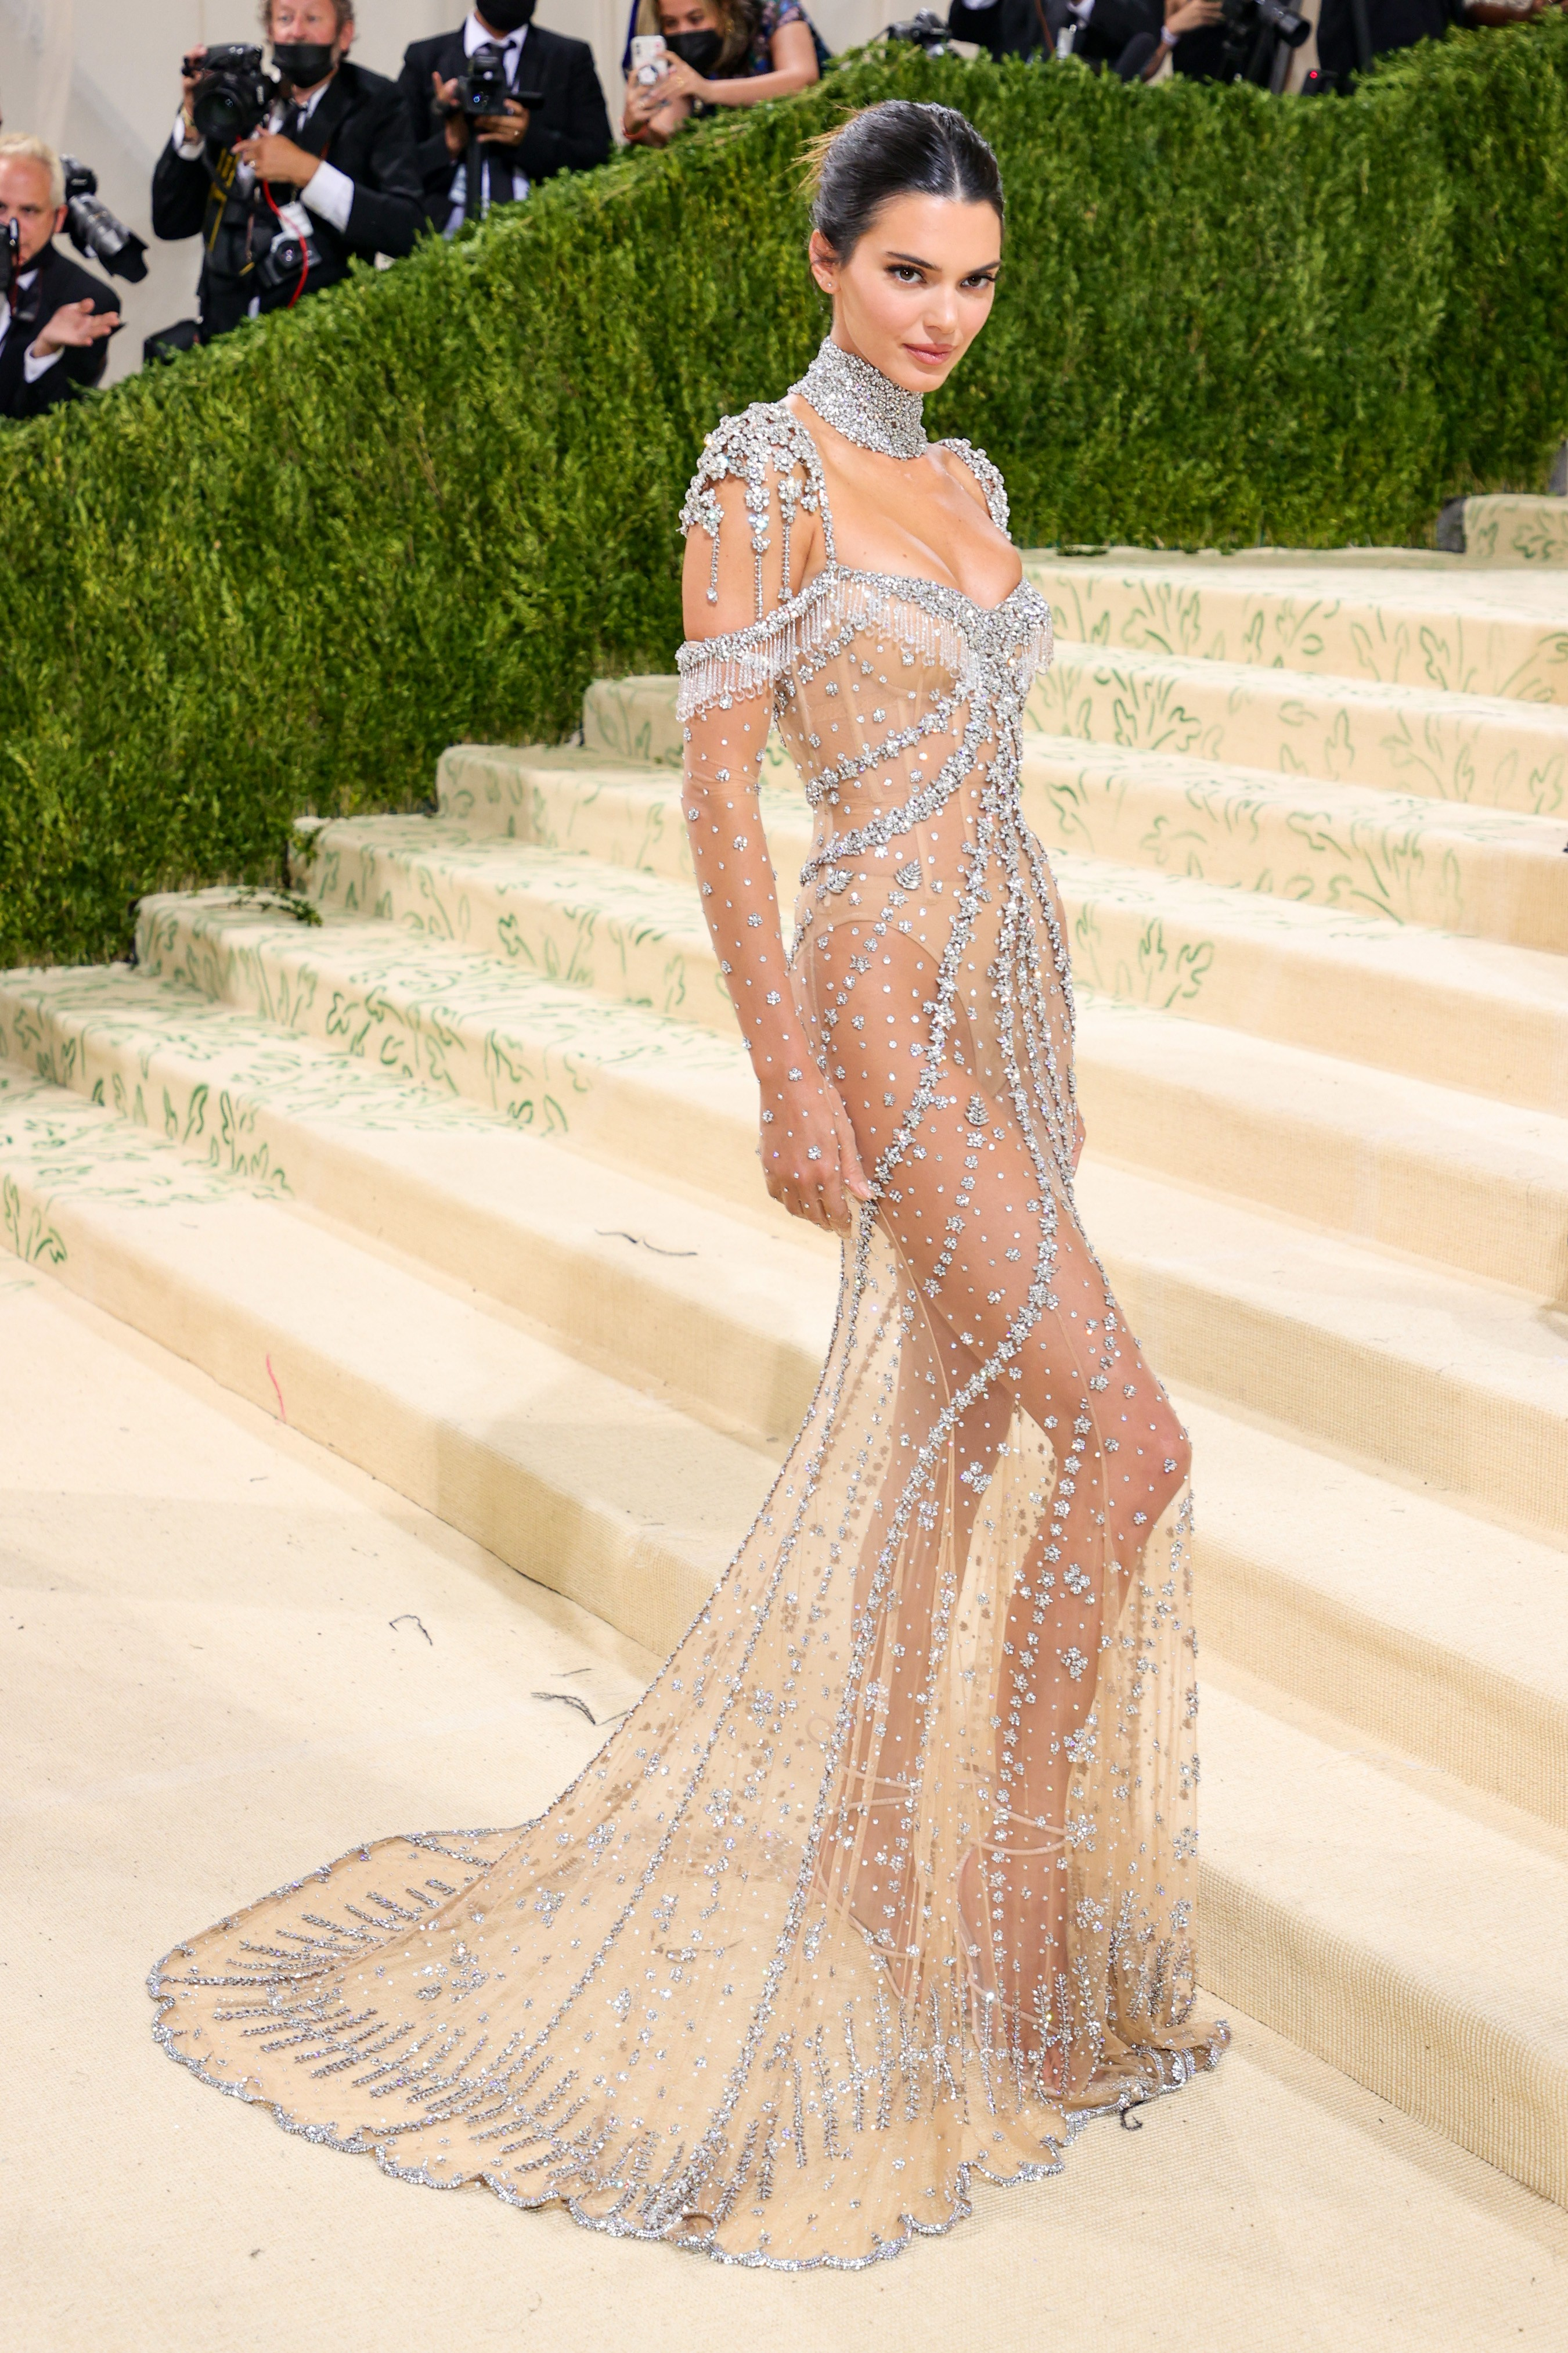 NEW YORK, NEW YORK - SEPTEMBER 13: Kendall Jenner attends The 2021 Met Gala Celebrating In America: A Lexicon Of Fashion at Metropolitan Museum of Art on September 13, 2021 in New York City. (Photo by Theo Wargo/Getty Images) (Foto: Getty Images)